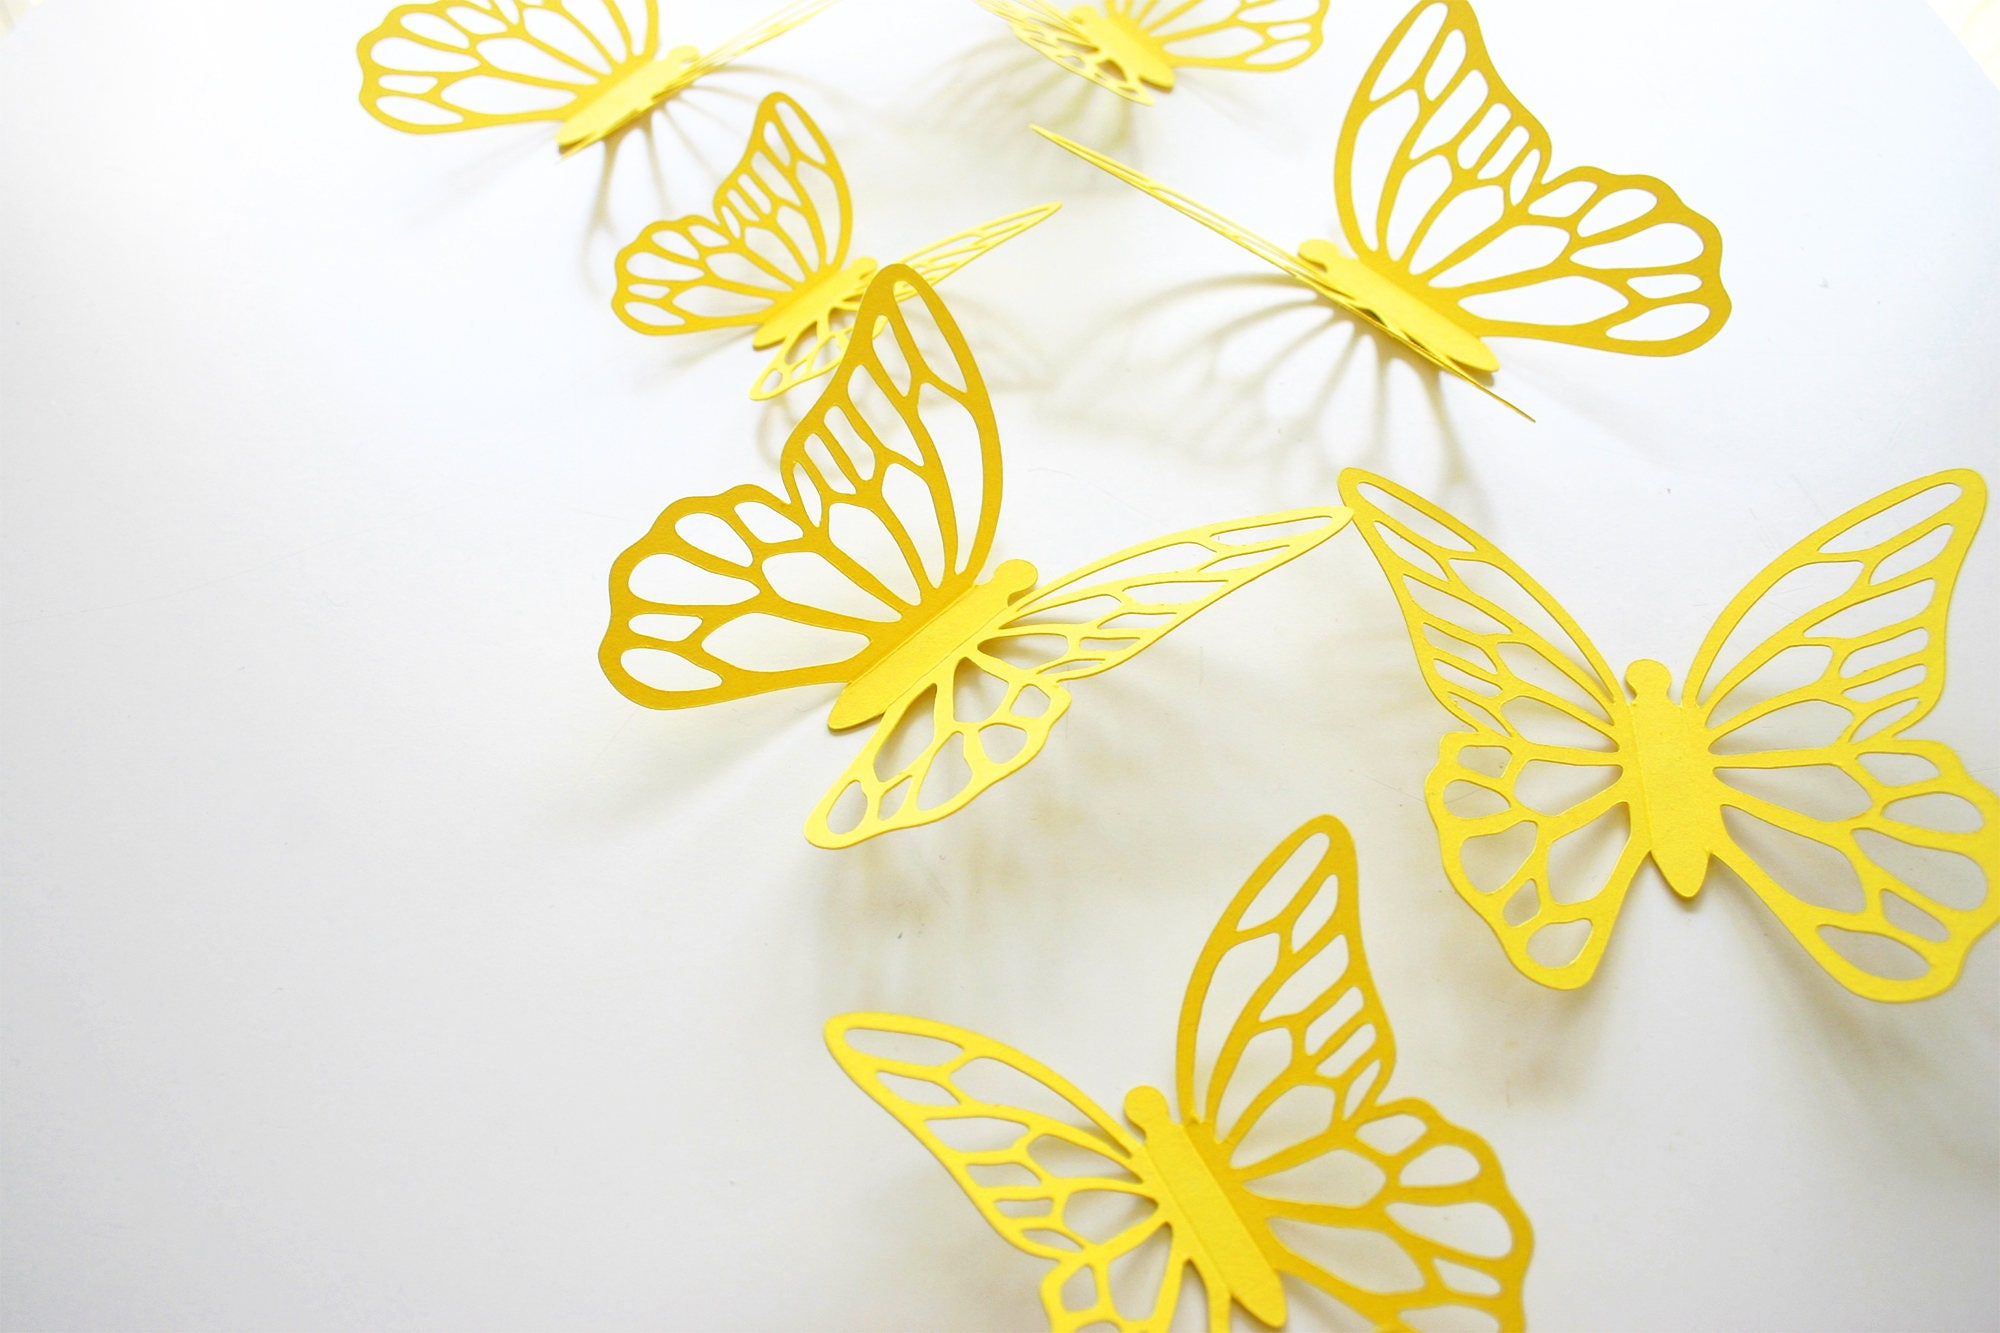 Butterfly 3D Wall Stickers YELLOW, Butterfly Decals, 3D Paper ...